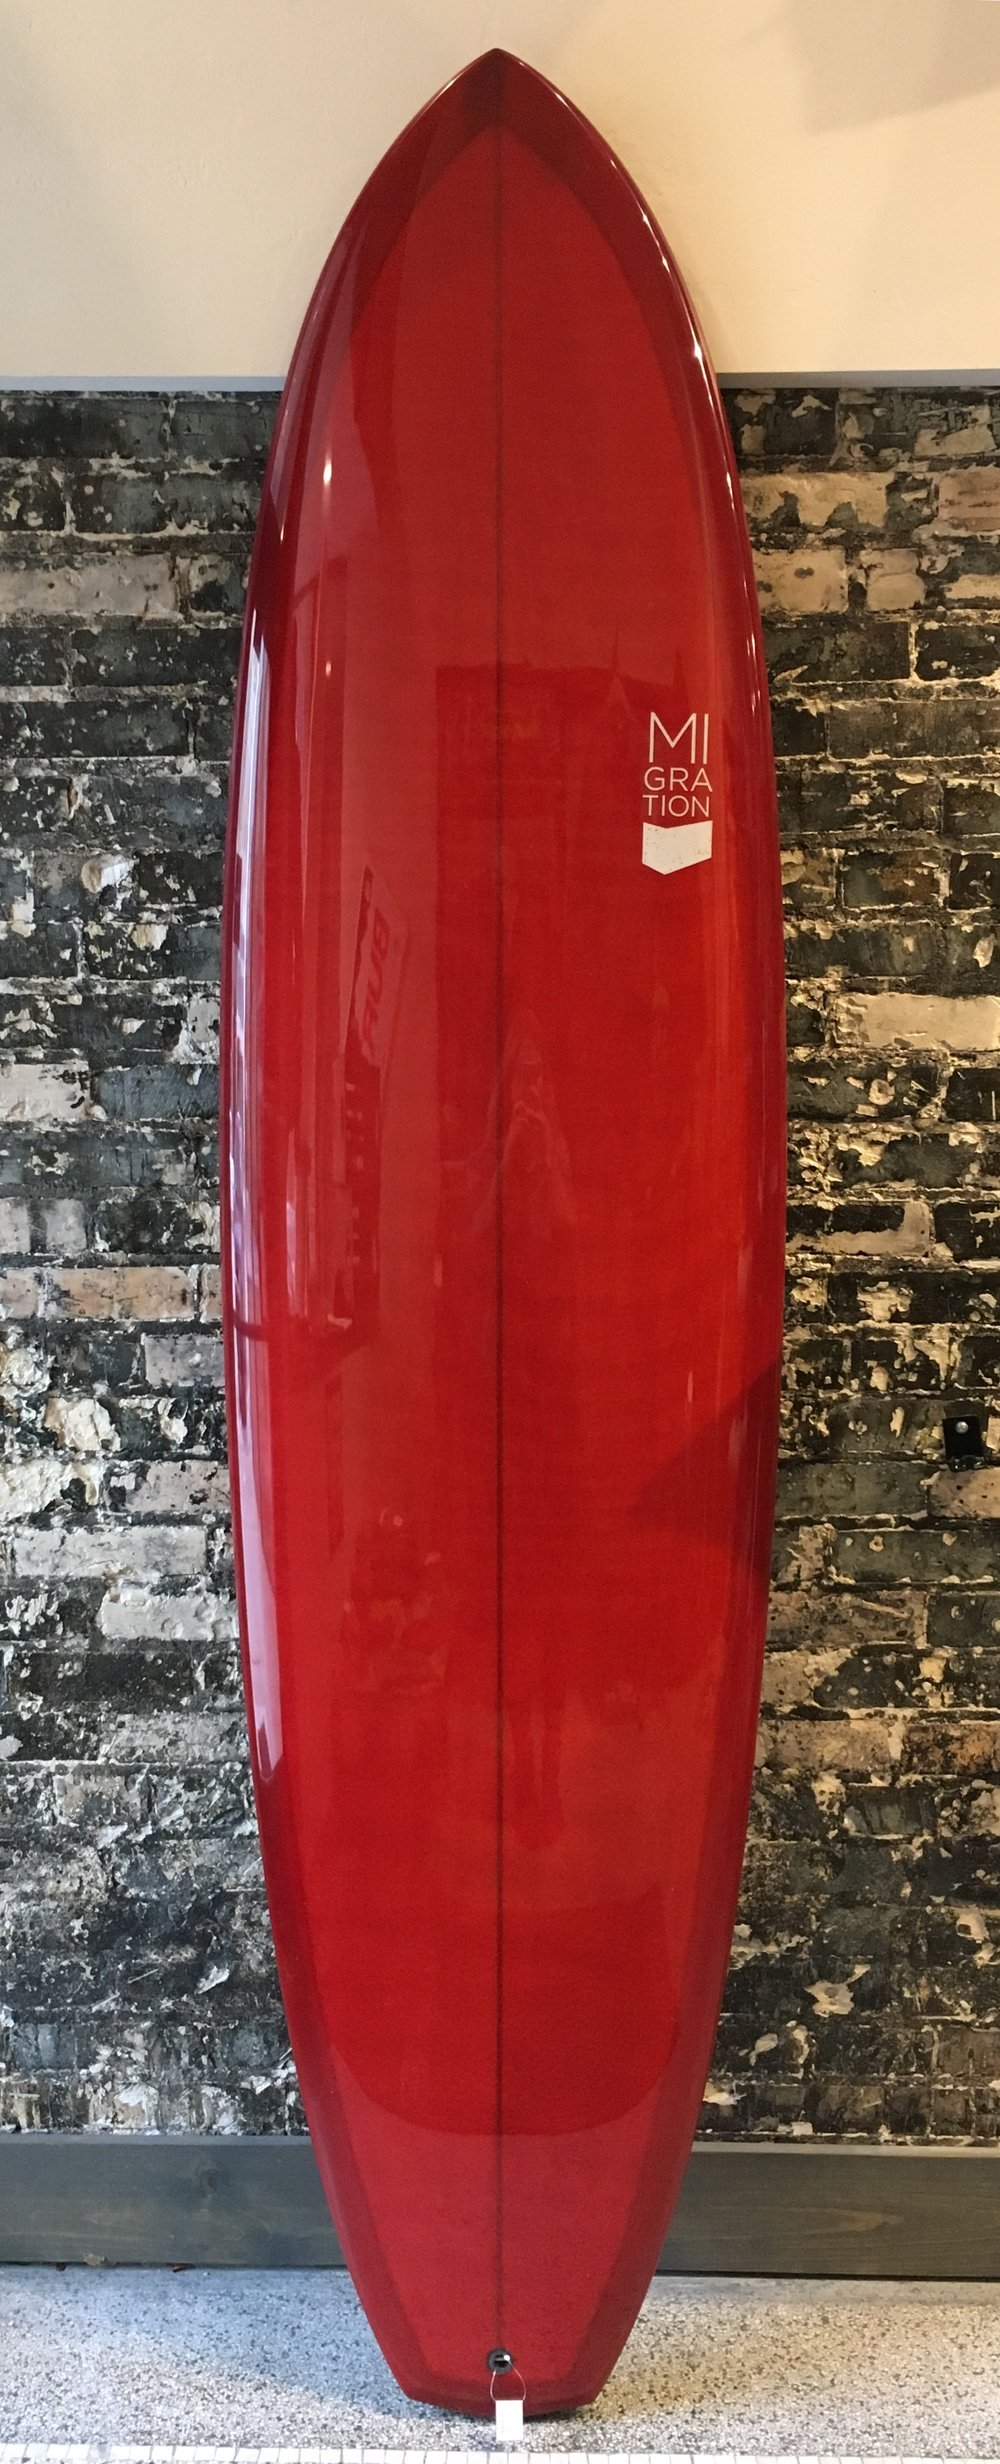 Migration Skua 7'6    -  5 fin midlength $975